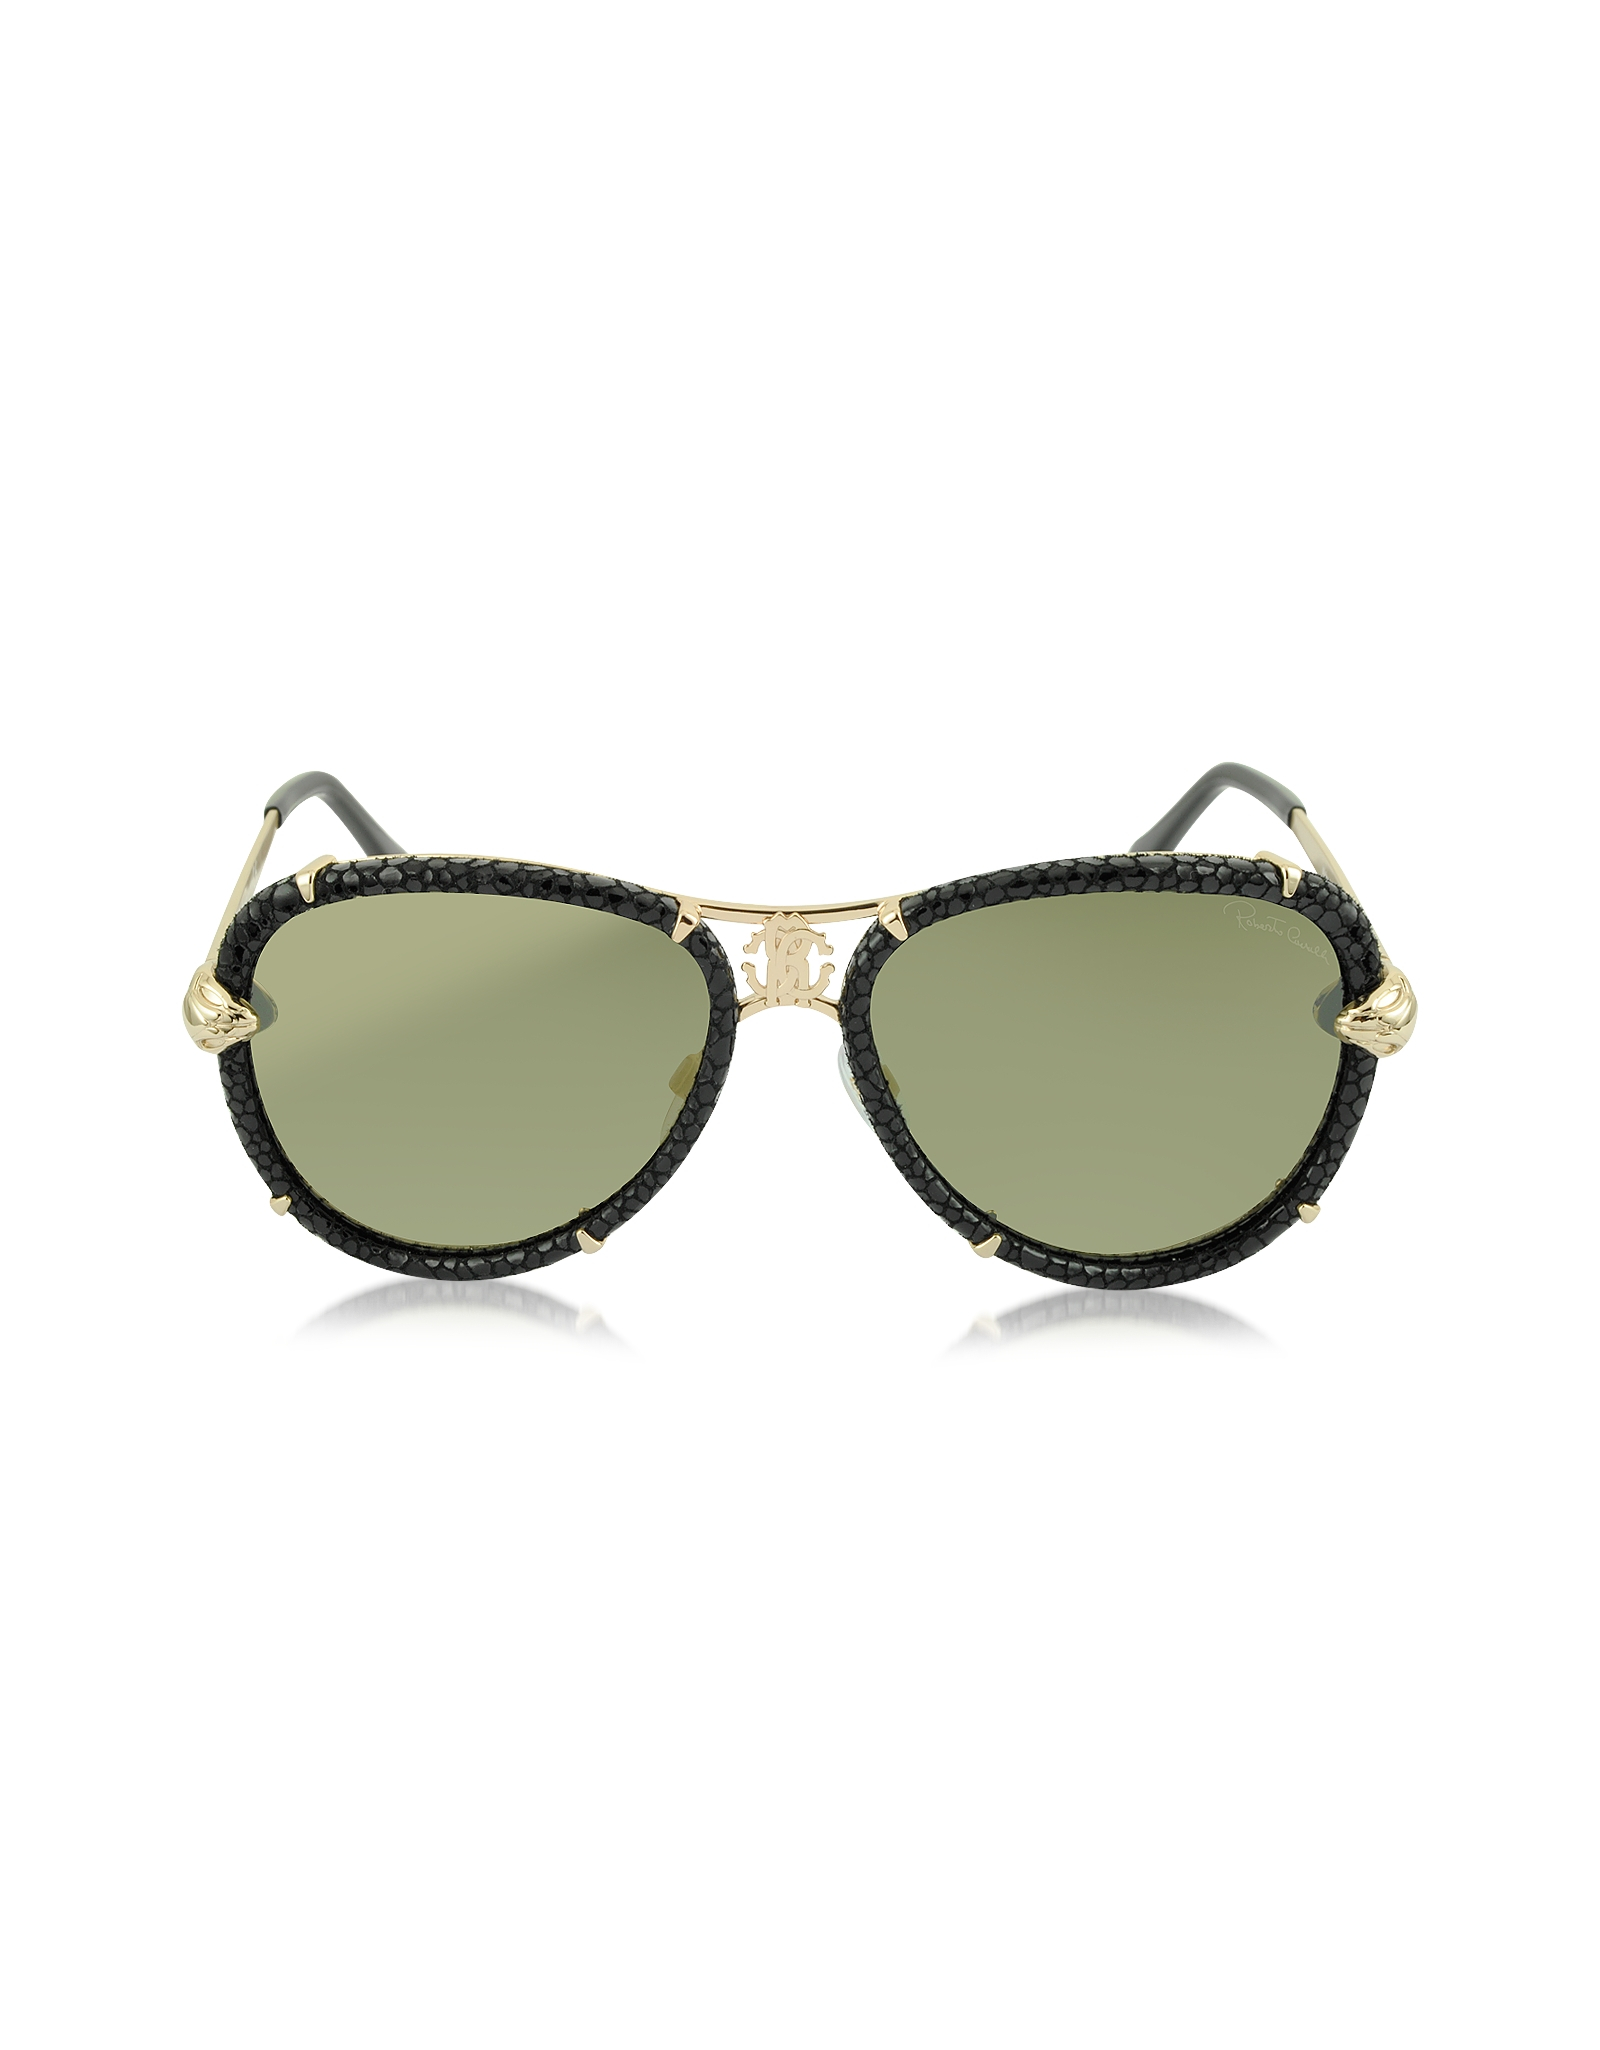 roberto cavalli mebsuta 885s leather gold metal aviator